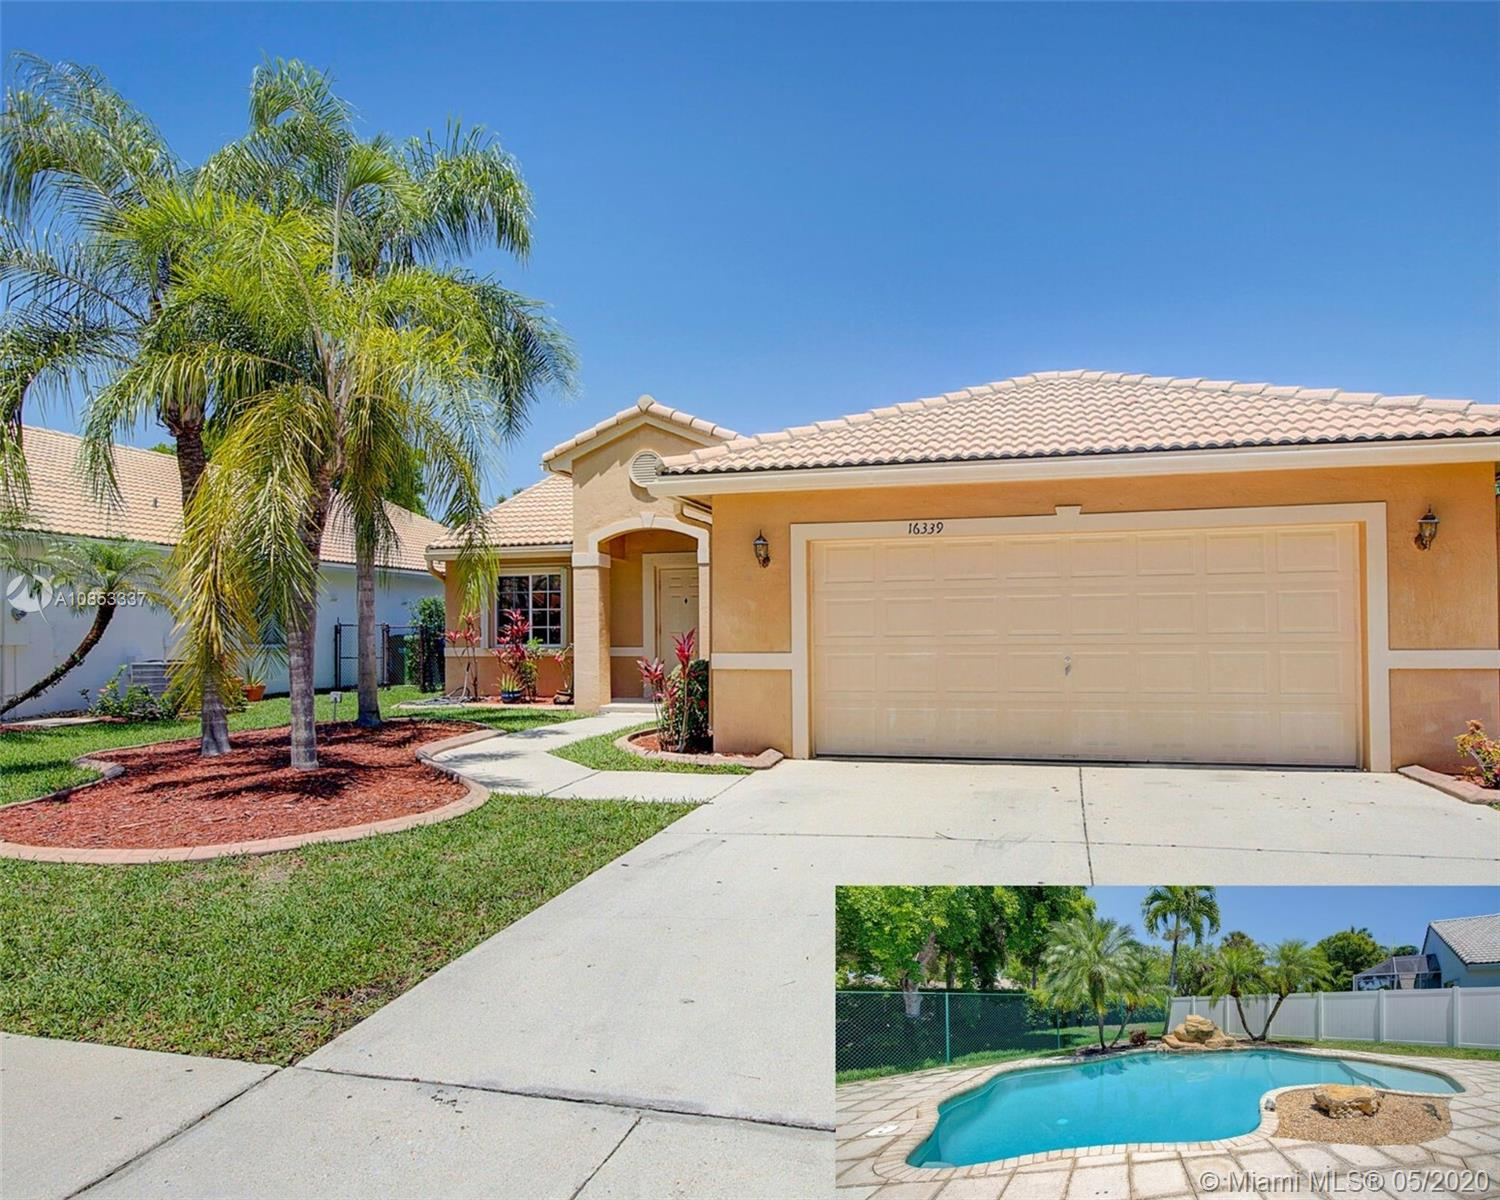 Highly Desirable 3 bedroom/2 bath Home w/Swimming Pool and 2 Car Garage In a Great Neighborhood with Top Schools in Pembroke Shores.  Designed As a Split Bedroom Floor Plan w/Vaulted Ceilings, a Formal Living, Dining Area & Family Room. Kitchen is Open to Family Room w/Pool view. Foyer Entry, New Washer/Dryer, Accordions Shutters Protection, Stove Pavers on the Driveway, Walkway. Gated community w/Security, low association fee $154/month includes the Comcast Cable. 1854 sq ft adjusted & 1621 sq ft living area. Easy to show, make your appointment today.